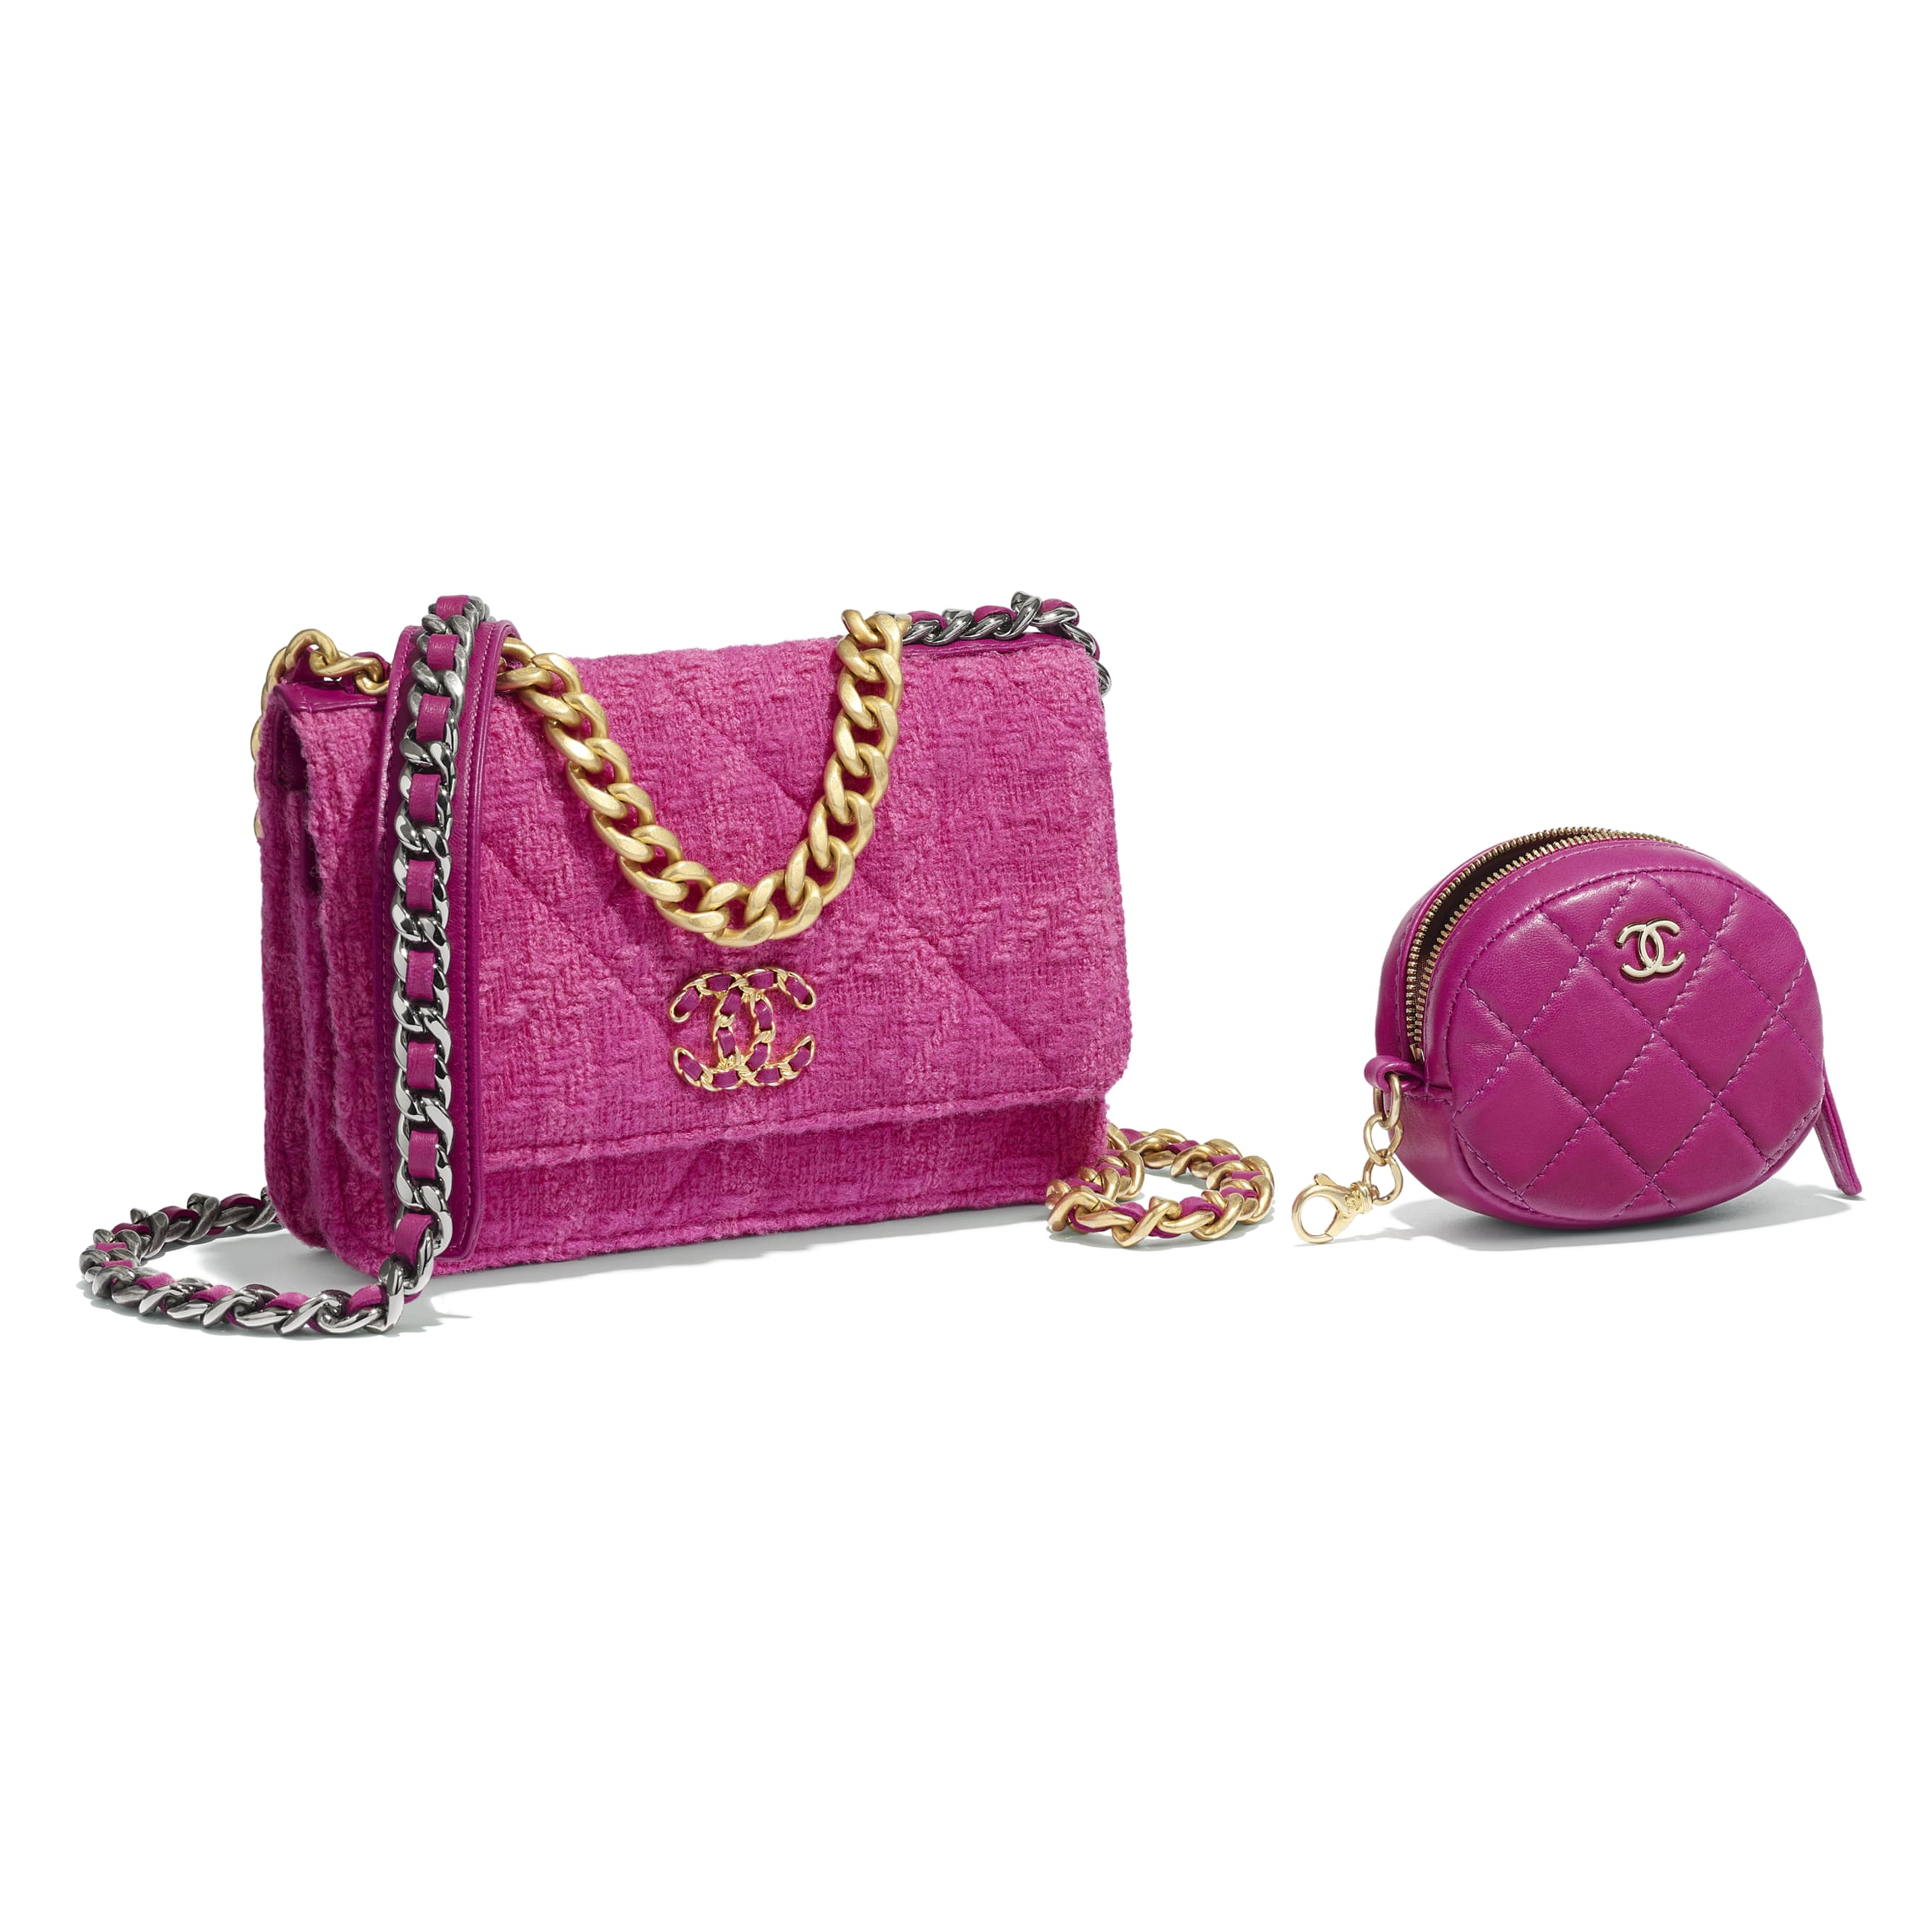 CHANEL 19 Wallet on Chain & Coin Purse - Fuchsia - Wool Tweed, Lambskin, Gold-Tone, Silver-Tone & Ruthenium-Finish Metal - Extra view - see standard sized version